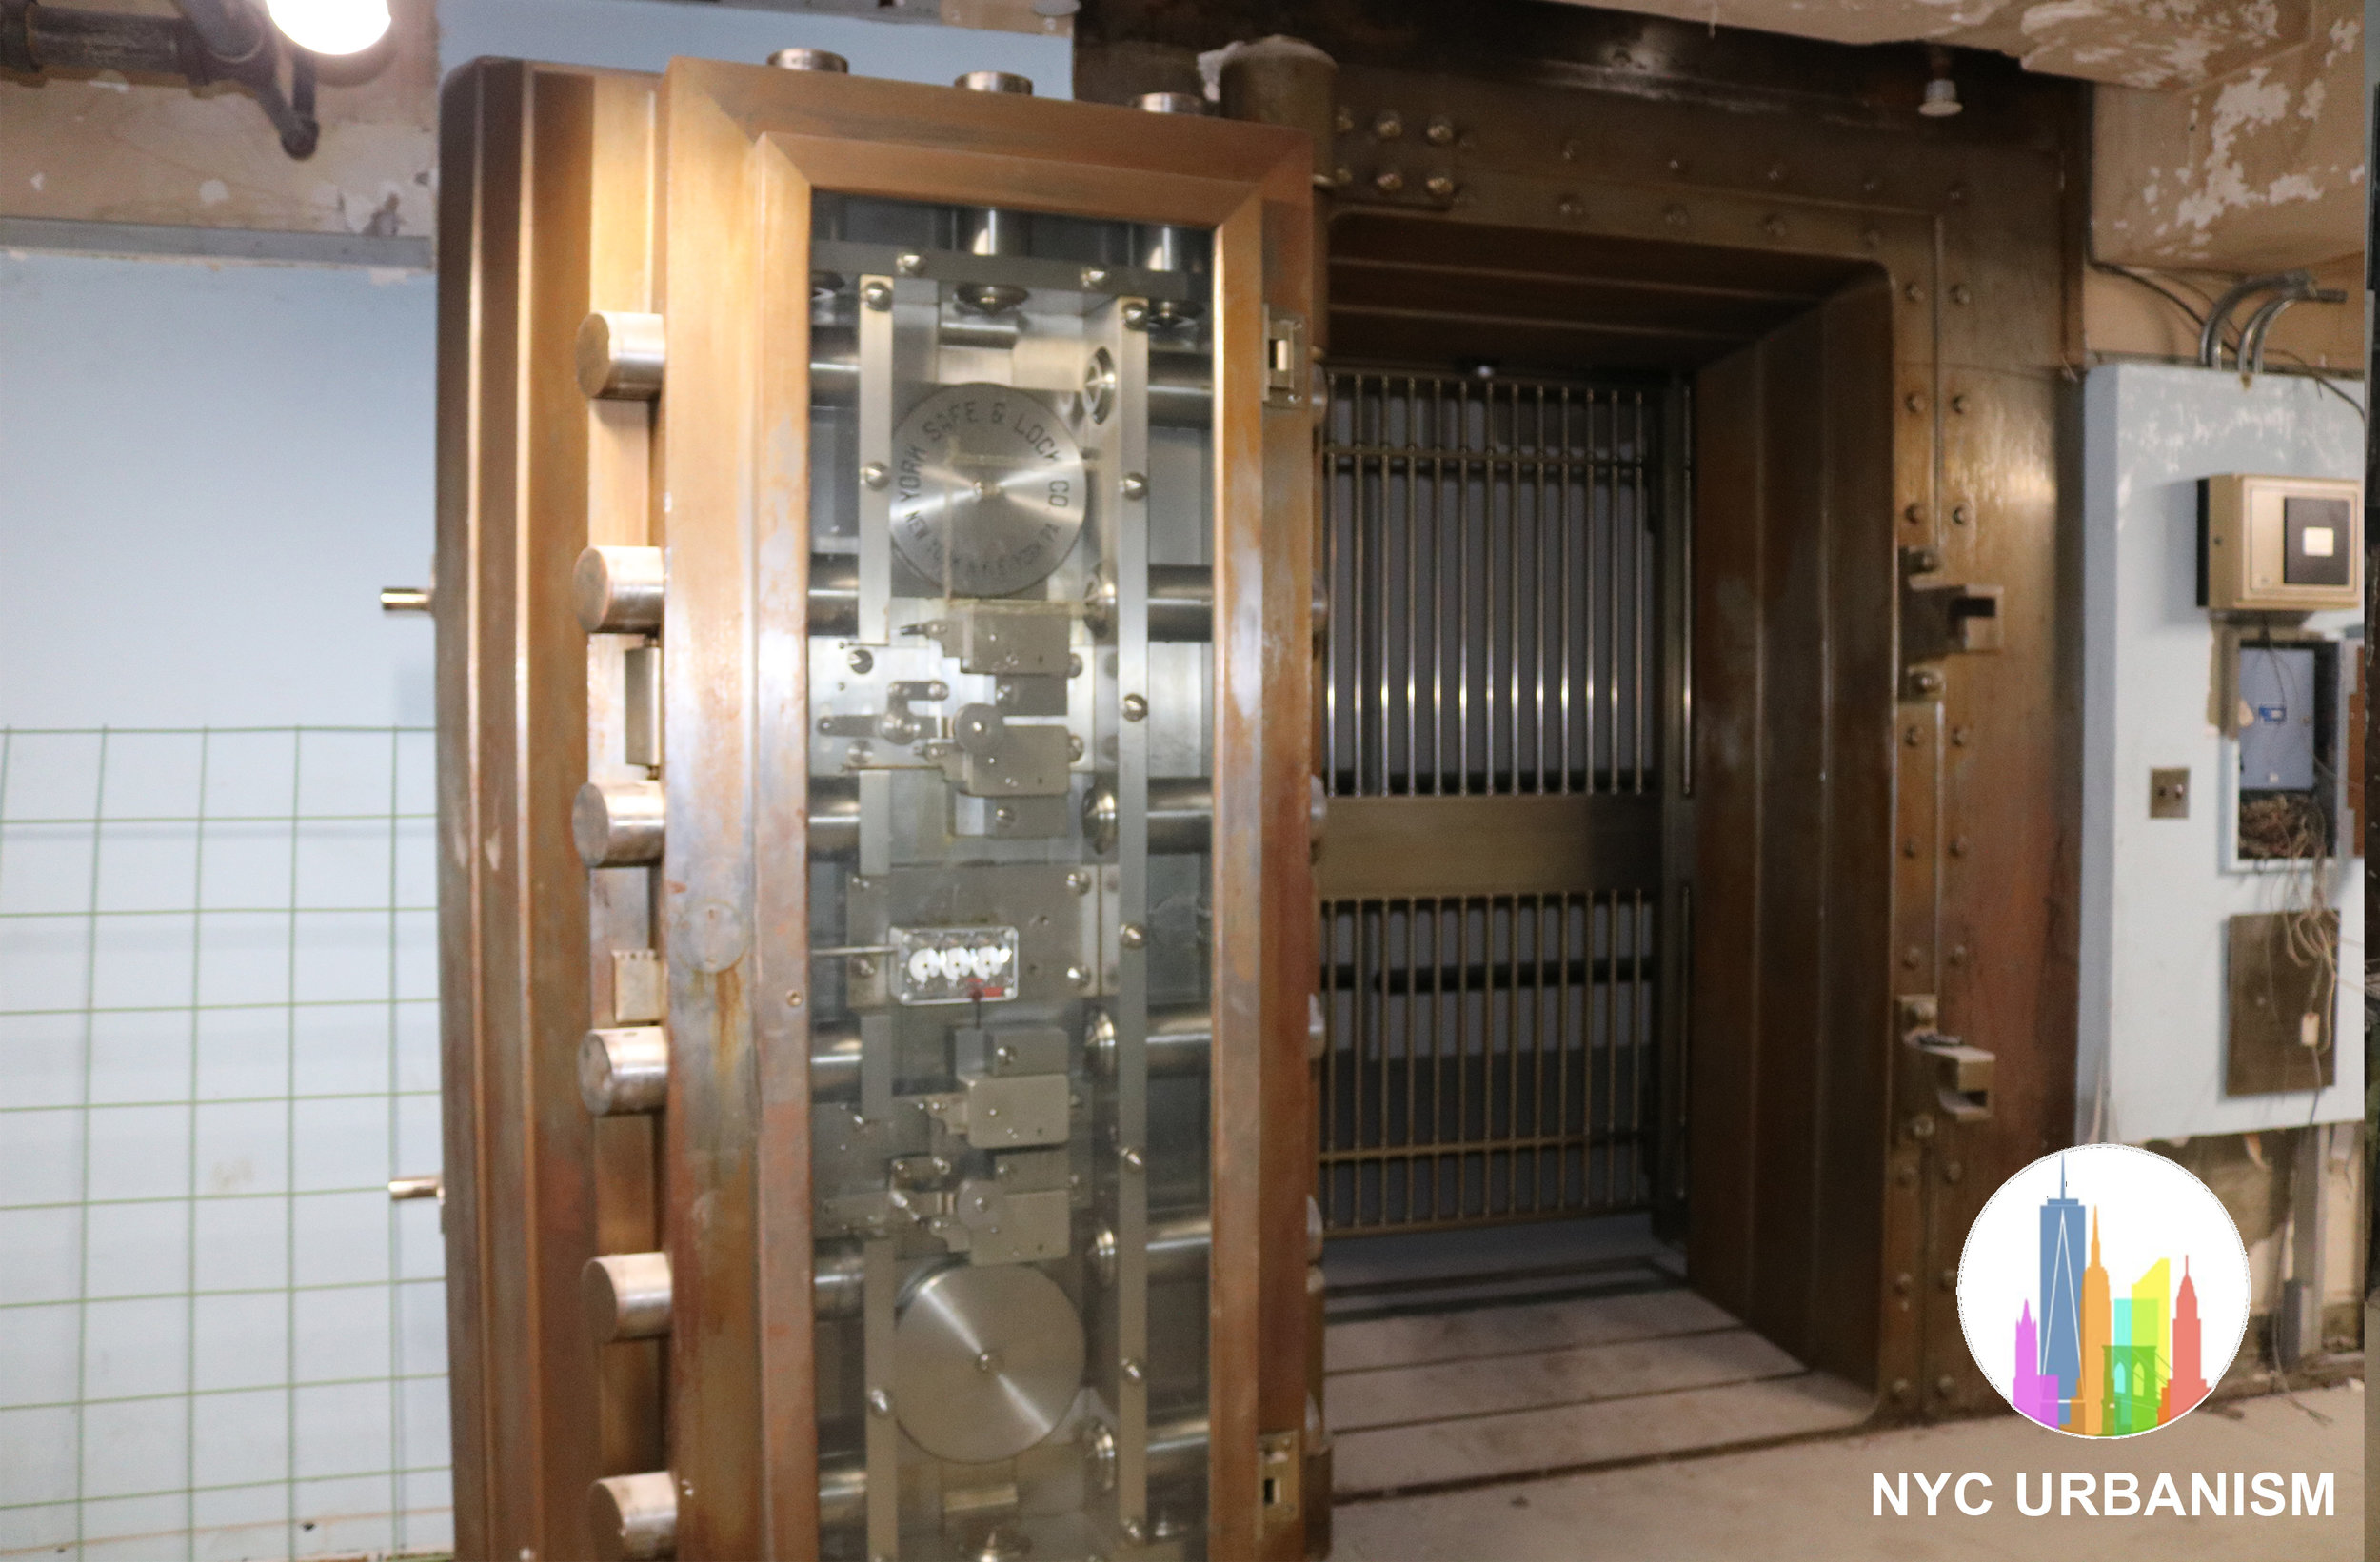 One of 16 bank vaults